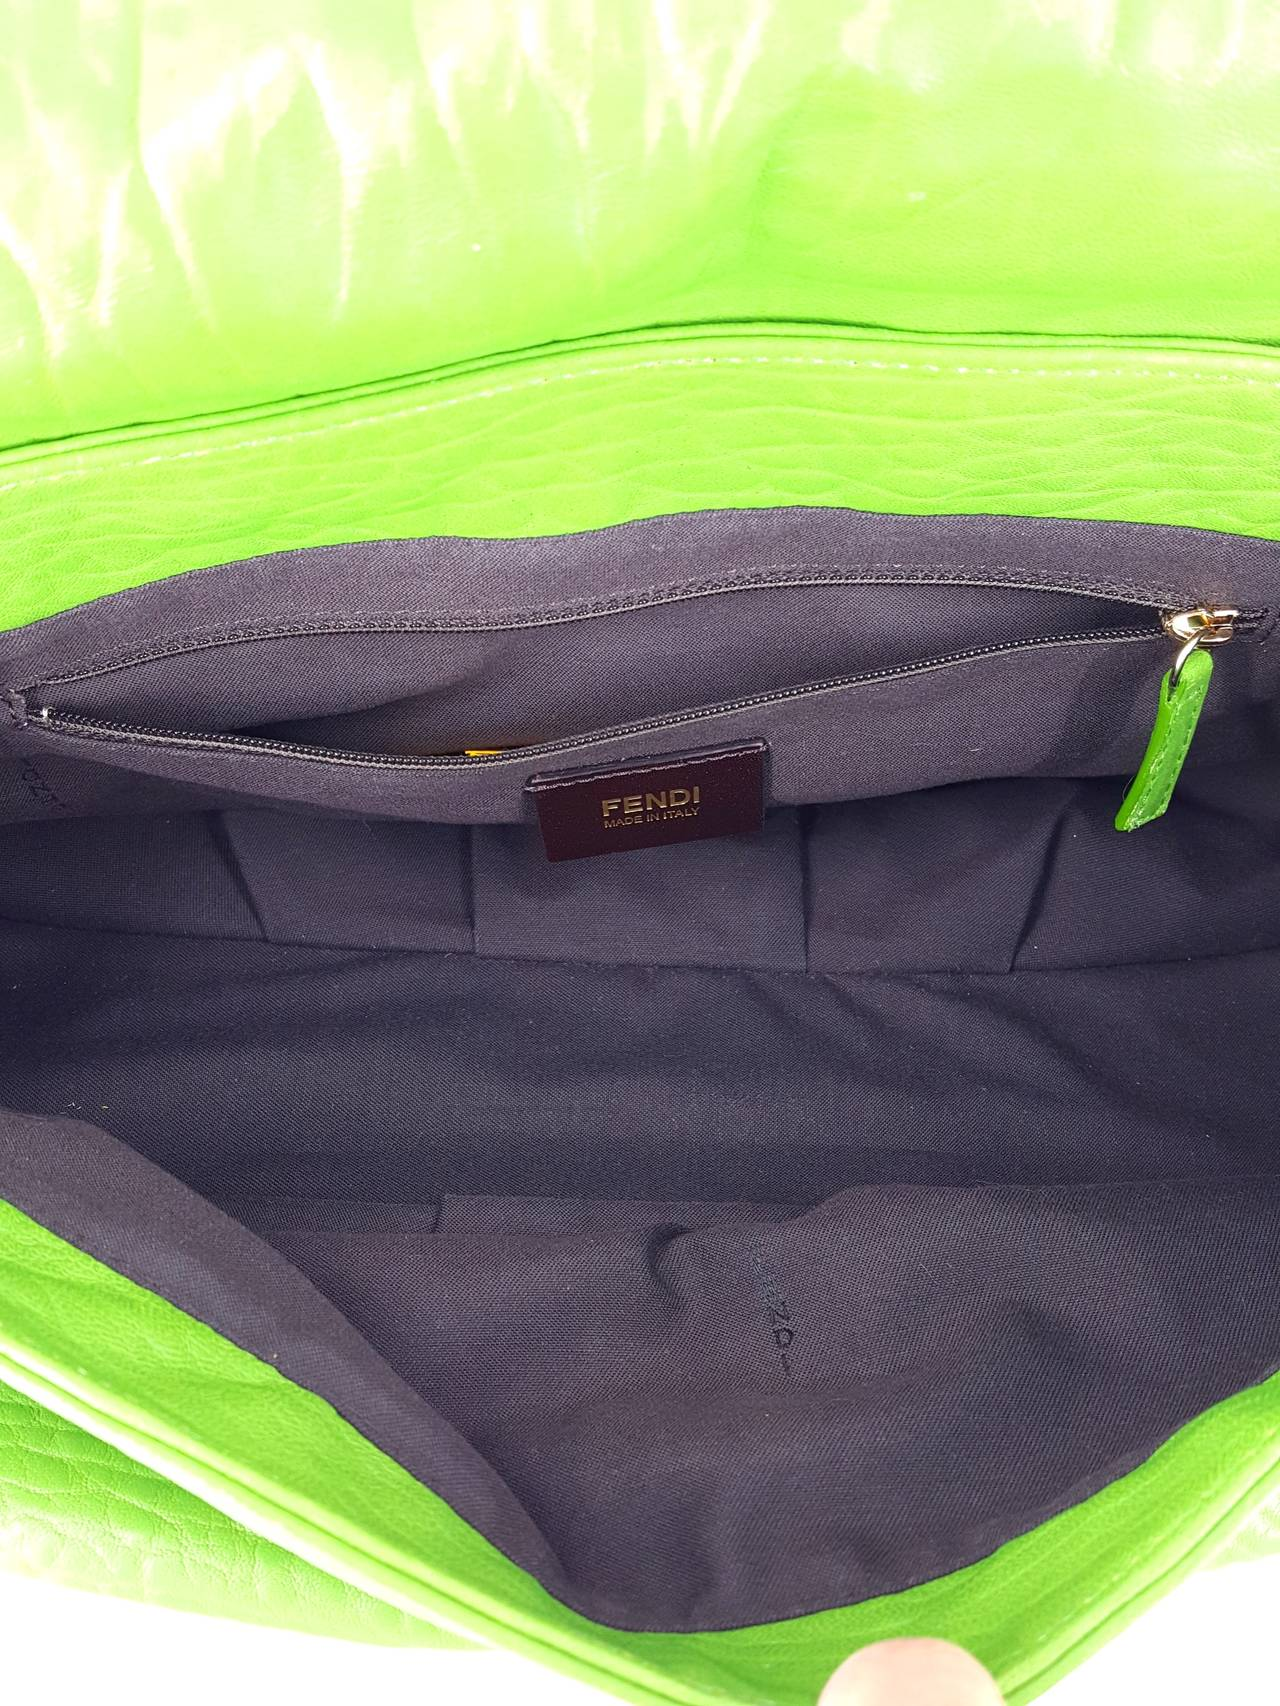 FENDI Kelly Green Leather Shoulder Bag With Silver Hardware. In Good Condition For Sale In Delray Beach, FL